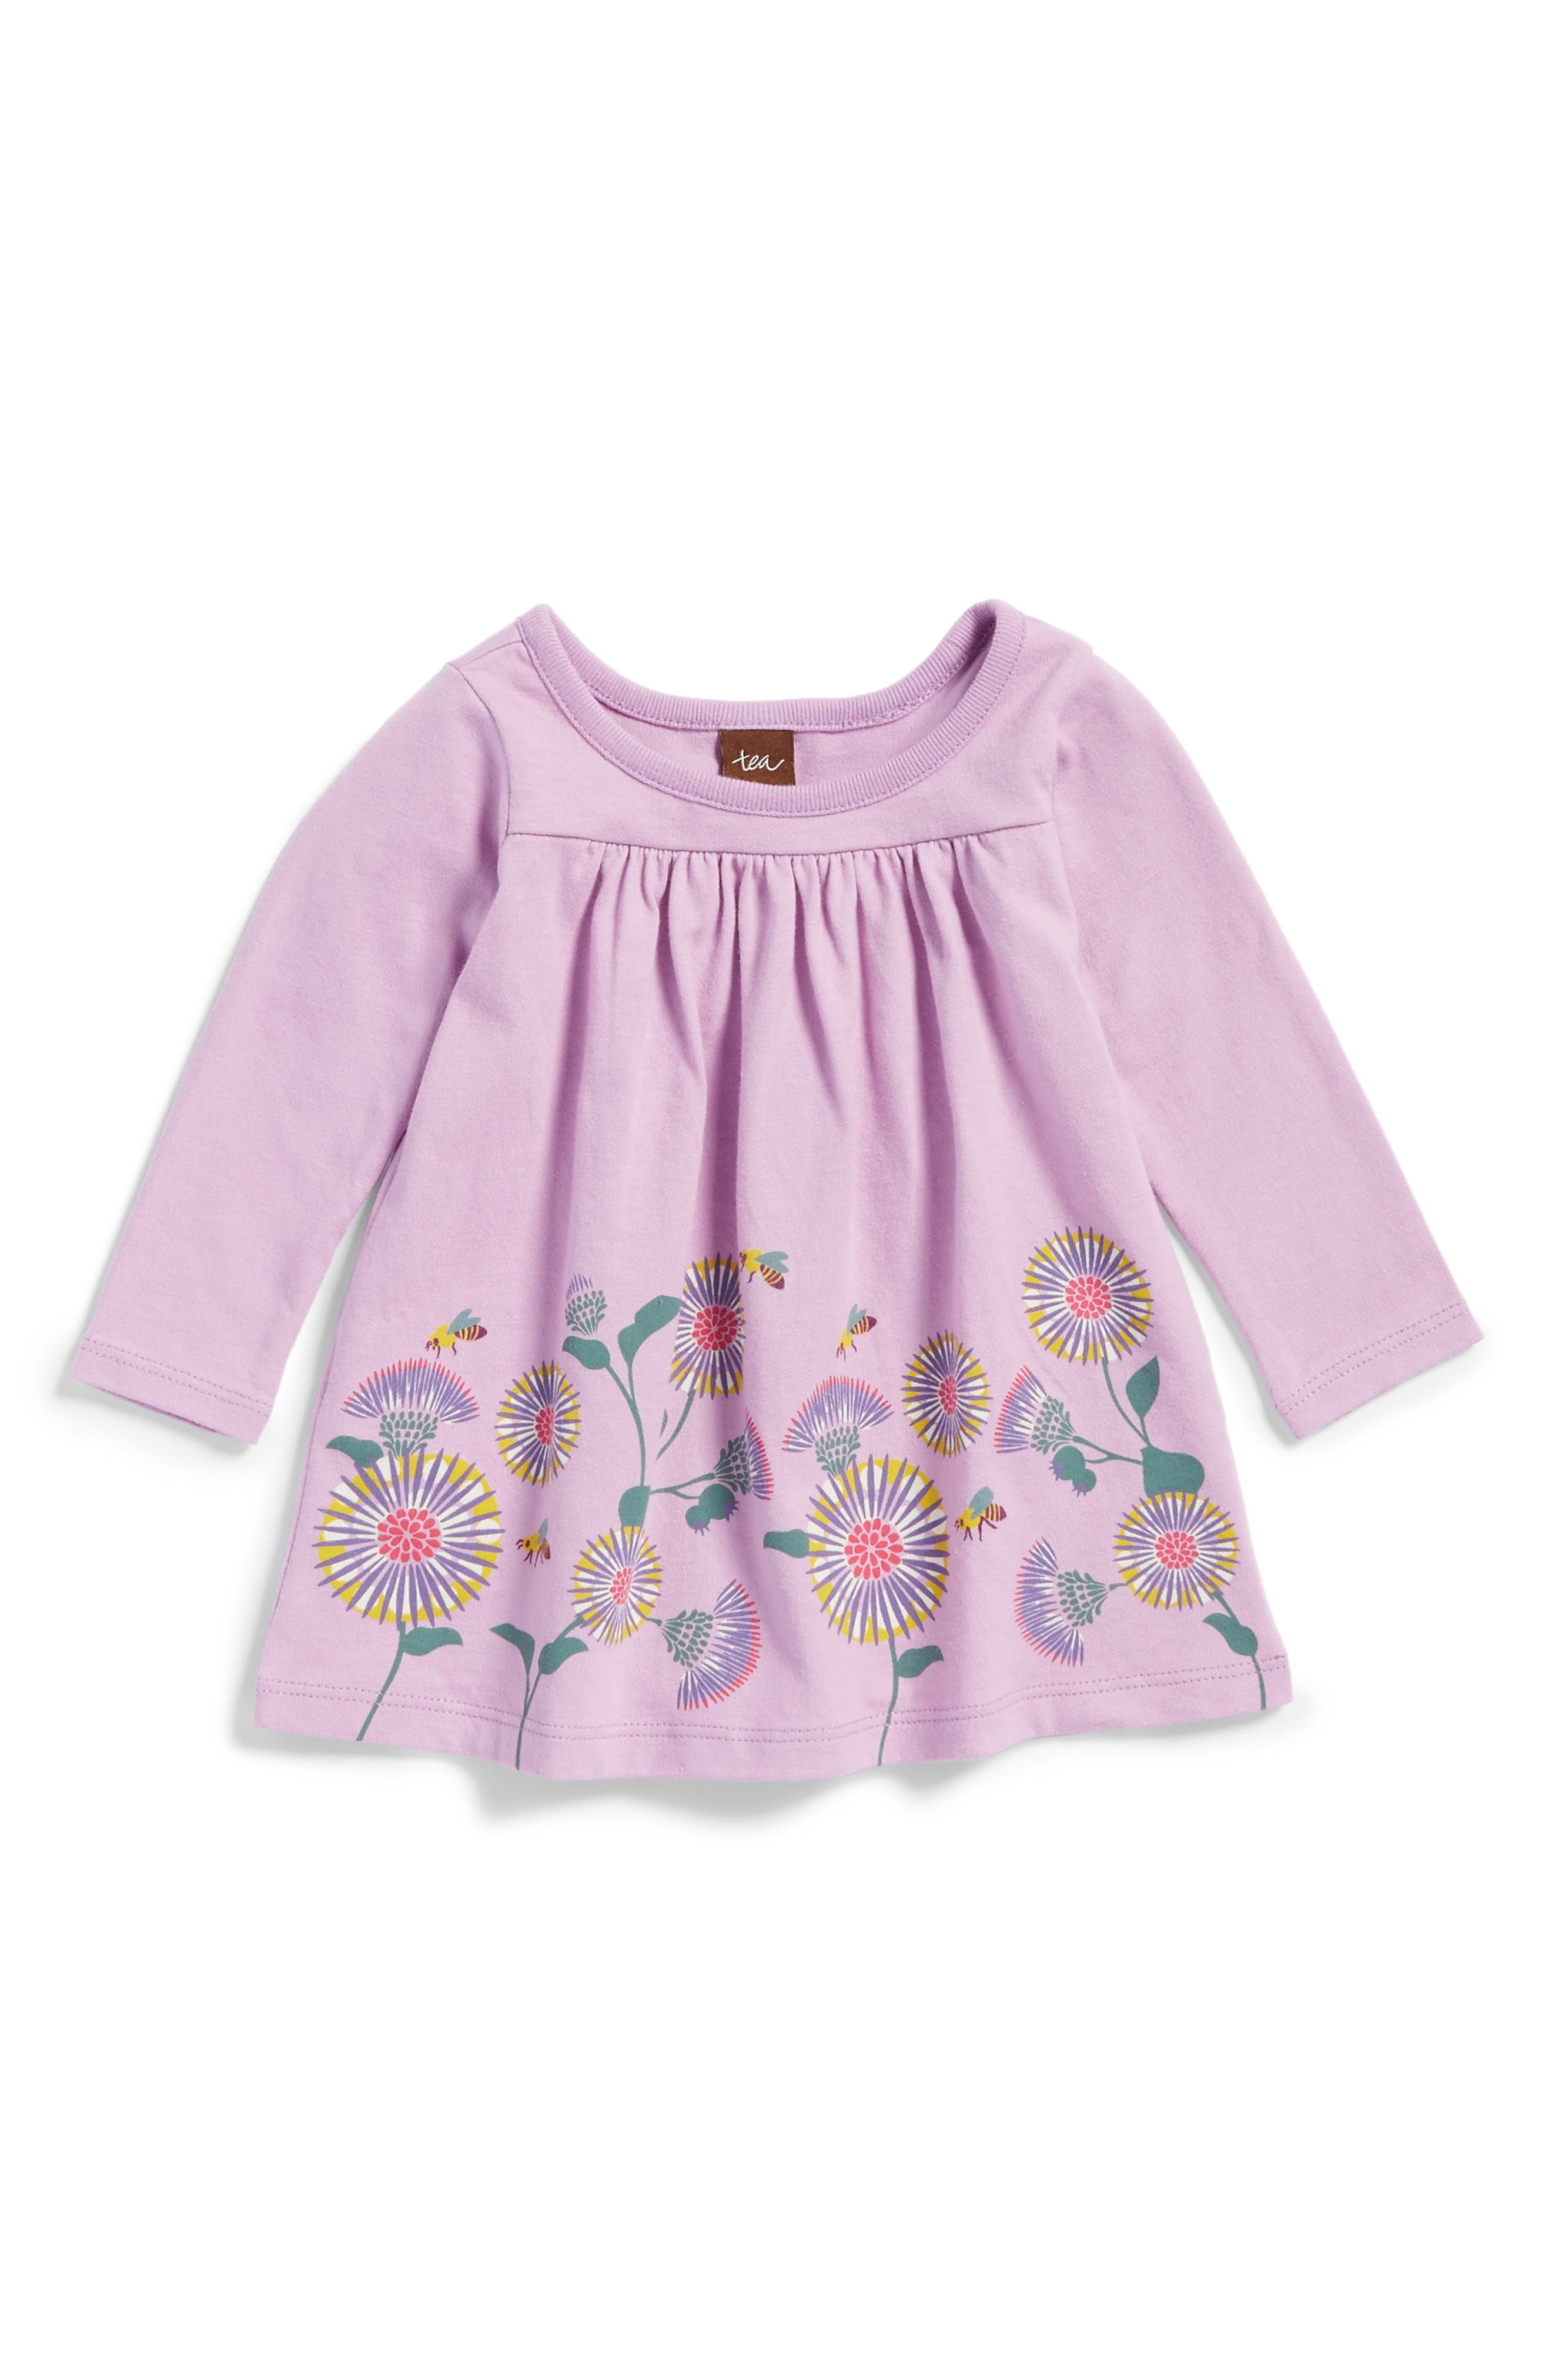 Main Image - Tea Collection Thistle Print Dress (Baby Girls)